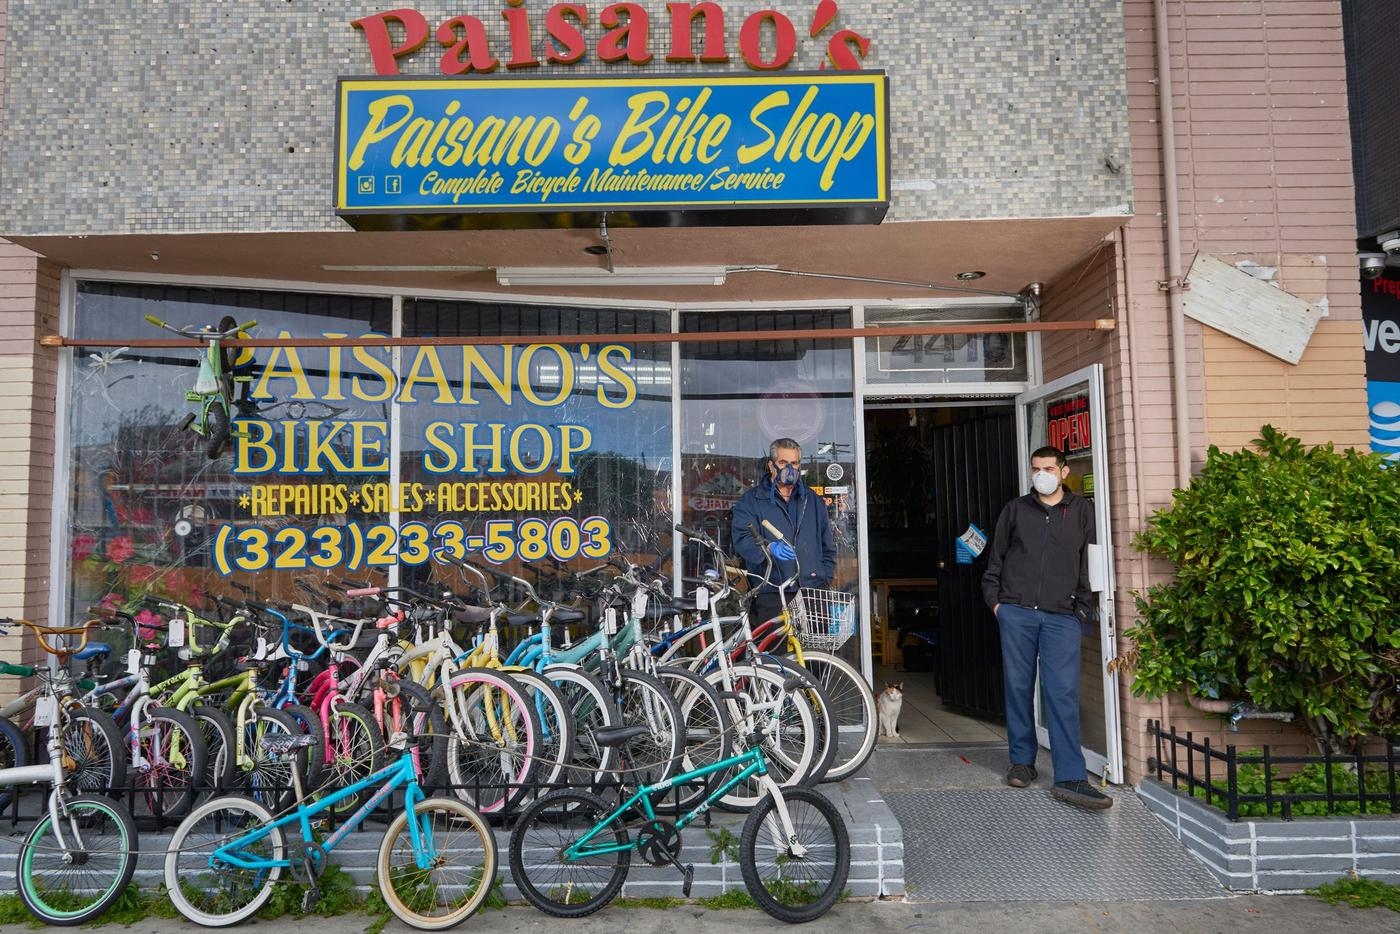 During COVID-19, These Los Angeles Bike Shops Are a Lifeline to Their Communities